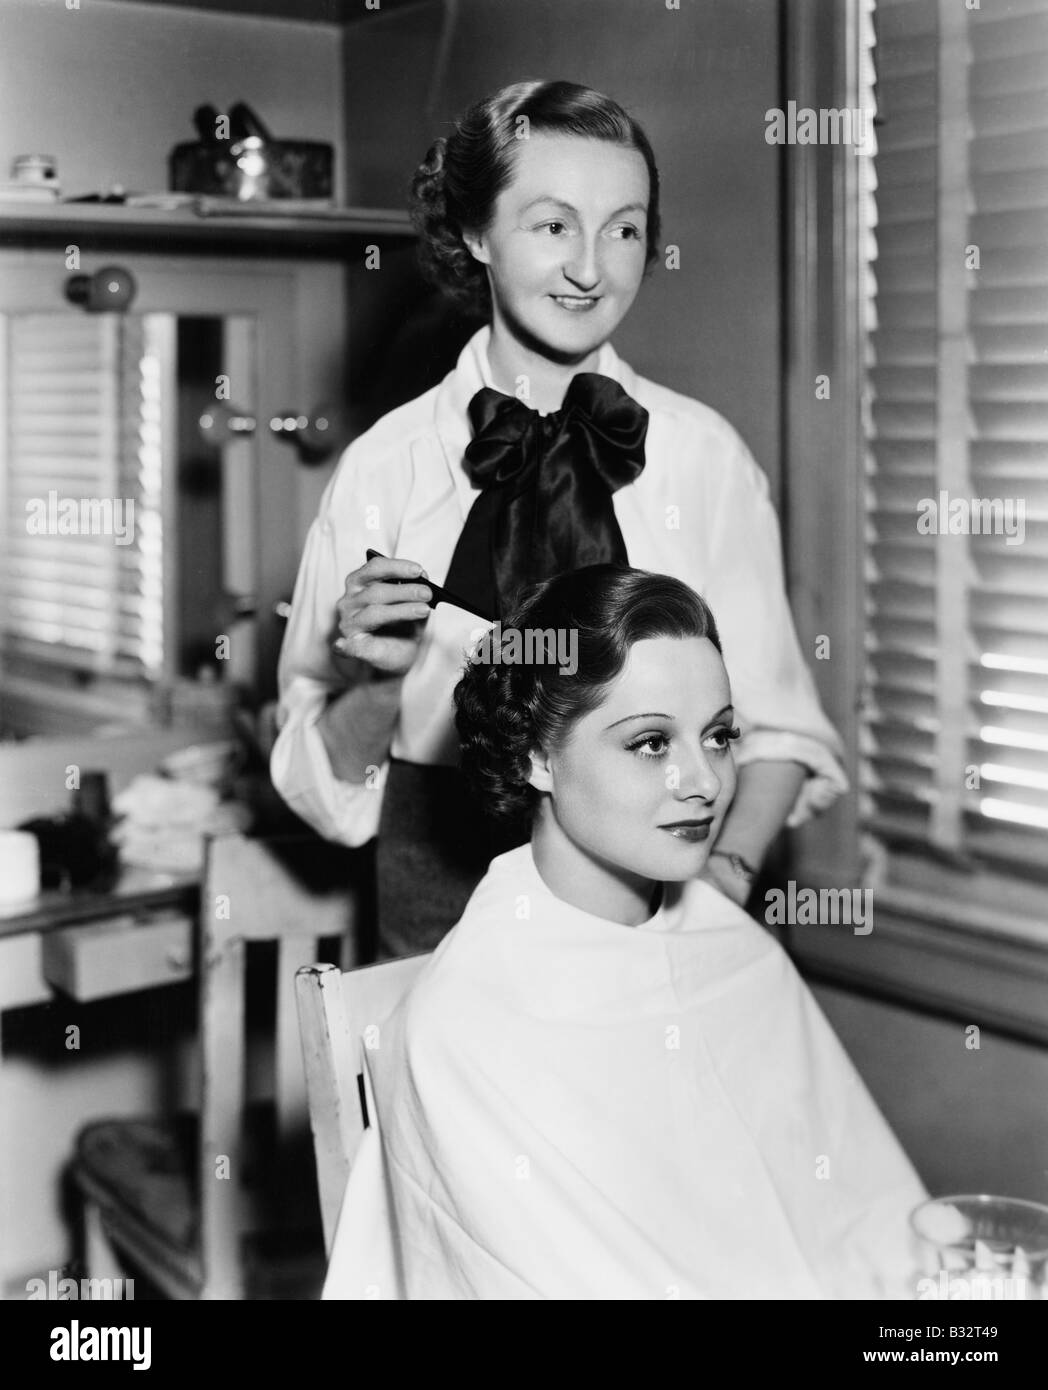 Young woman getting her hair done in a hair salon - Stock Image